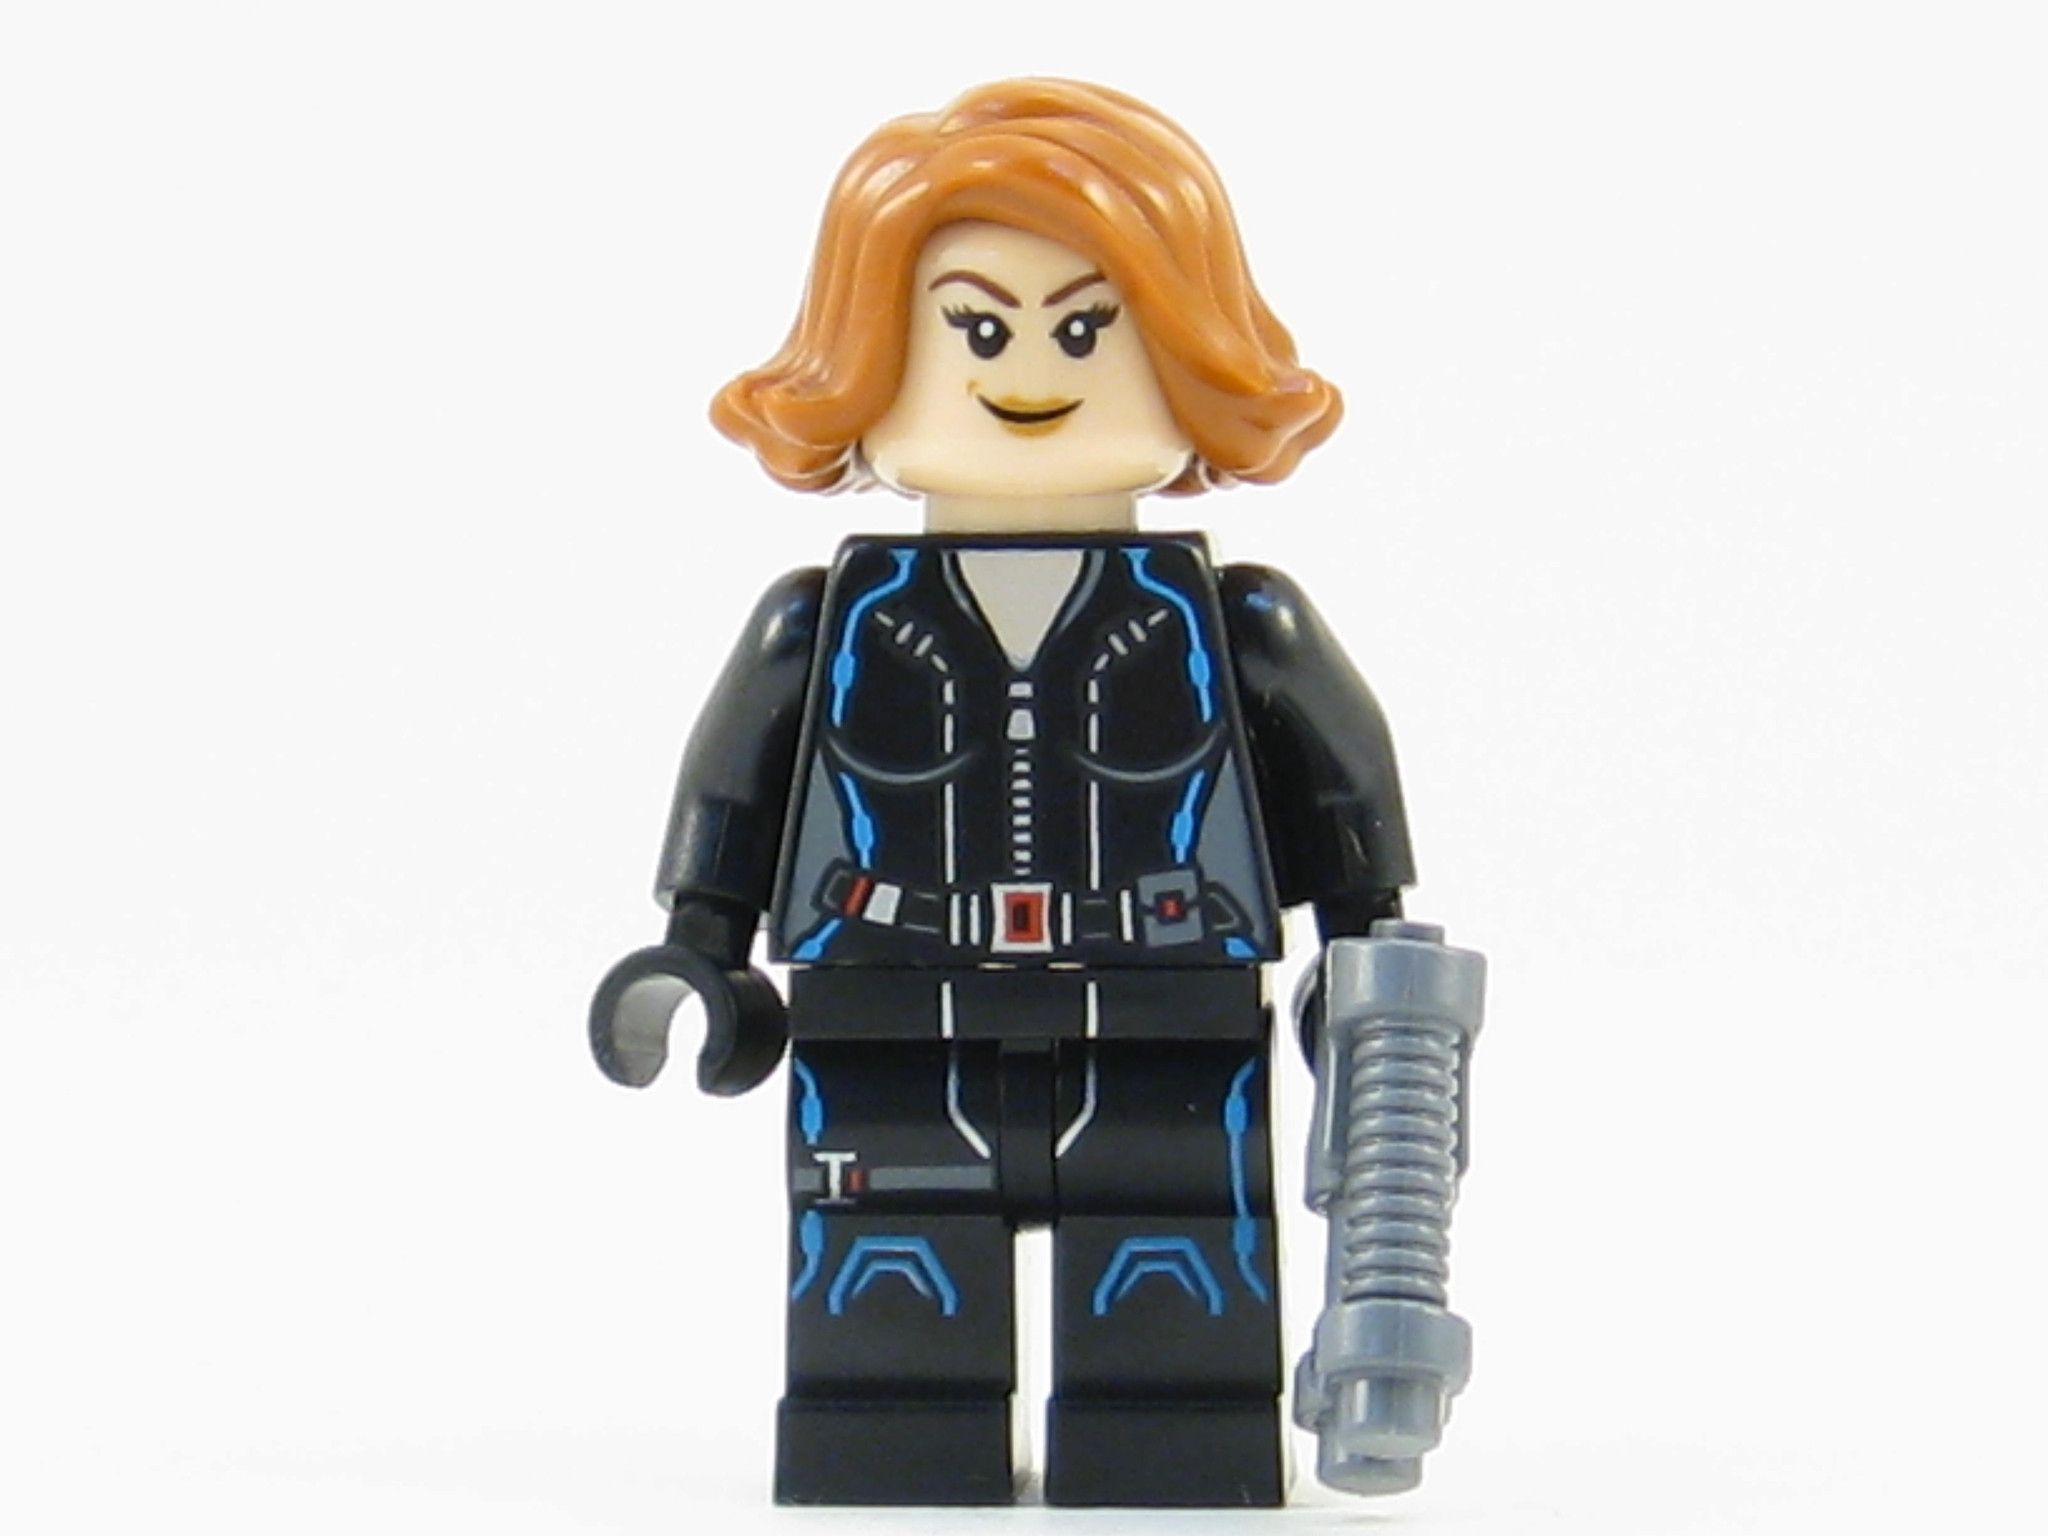 LEGO Marvel Avengers Super Heroes Black Widow Minifigure ...